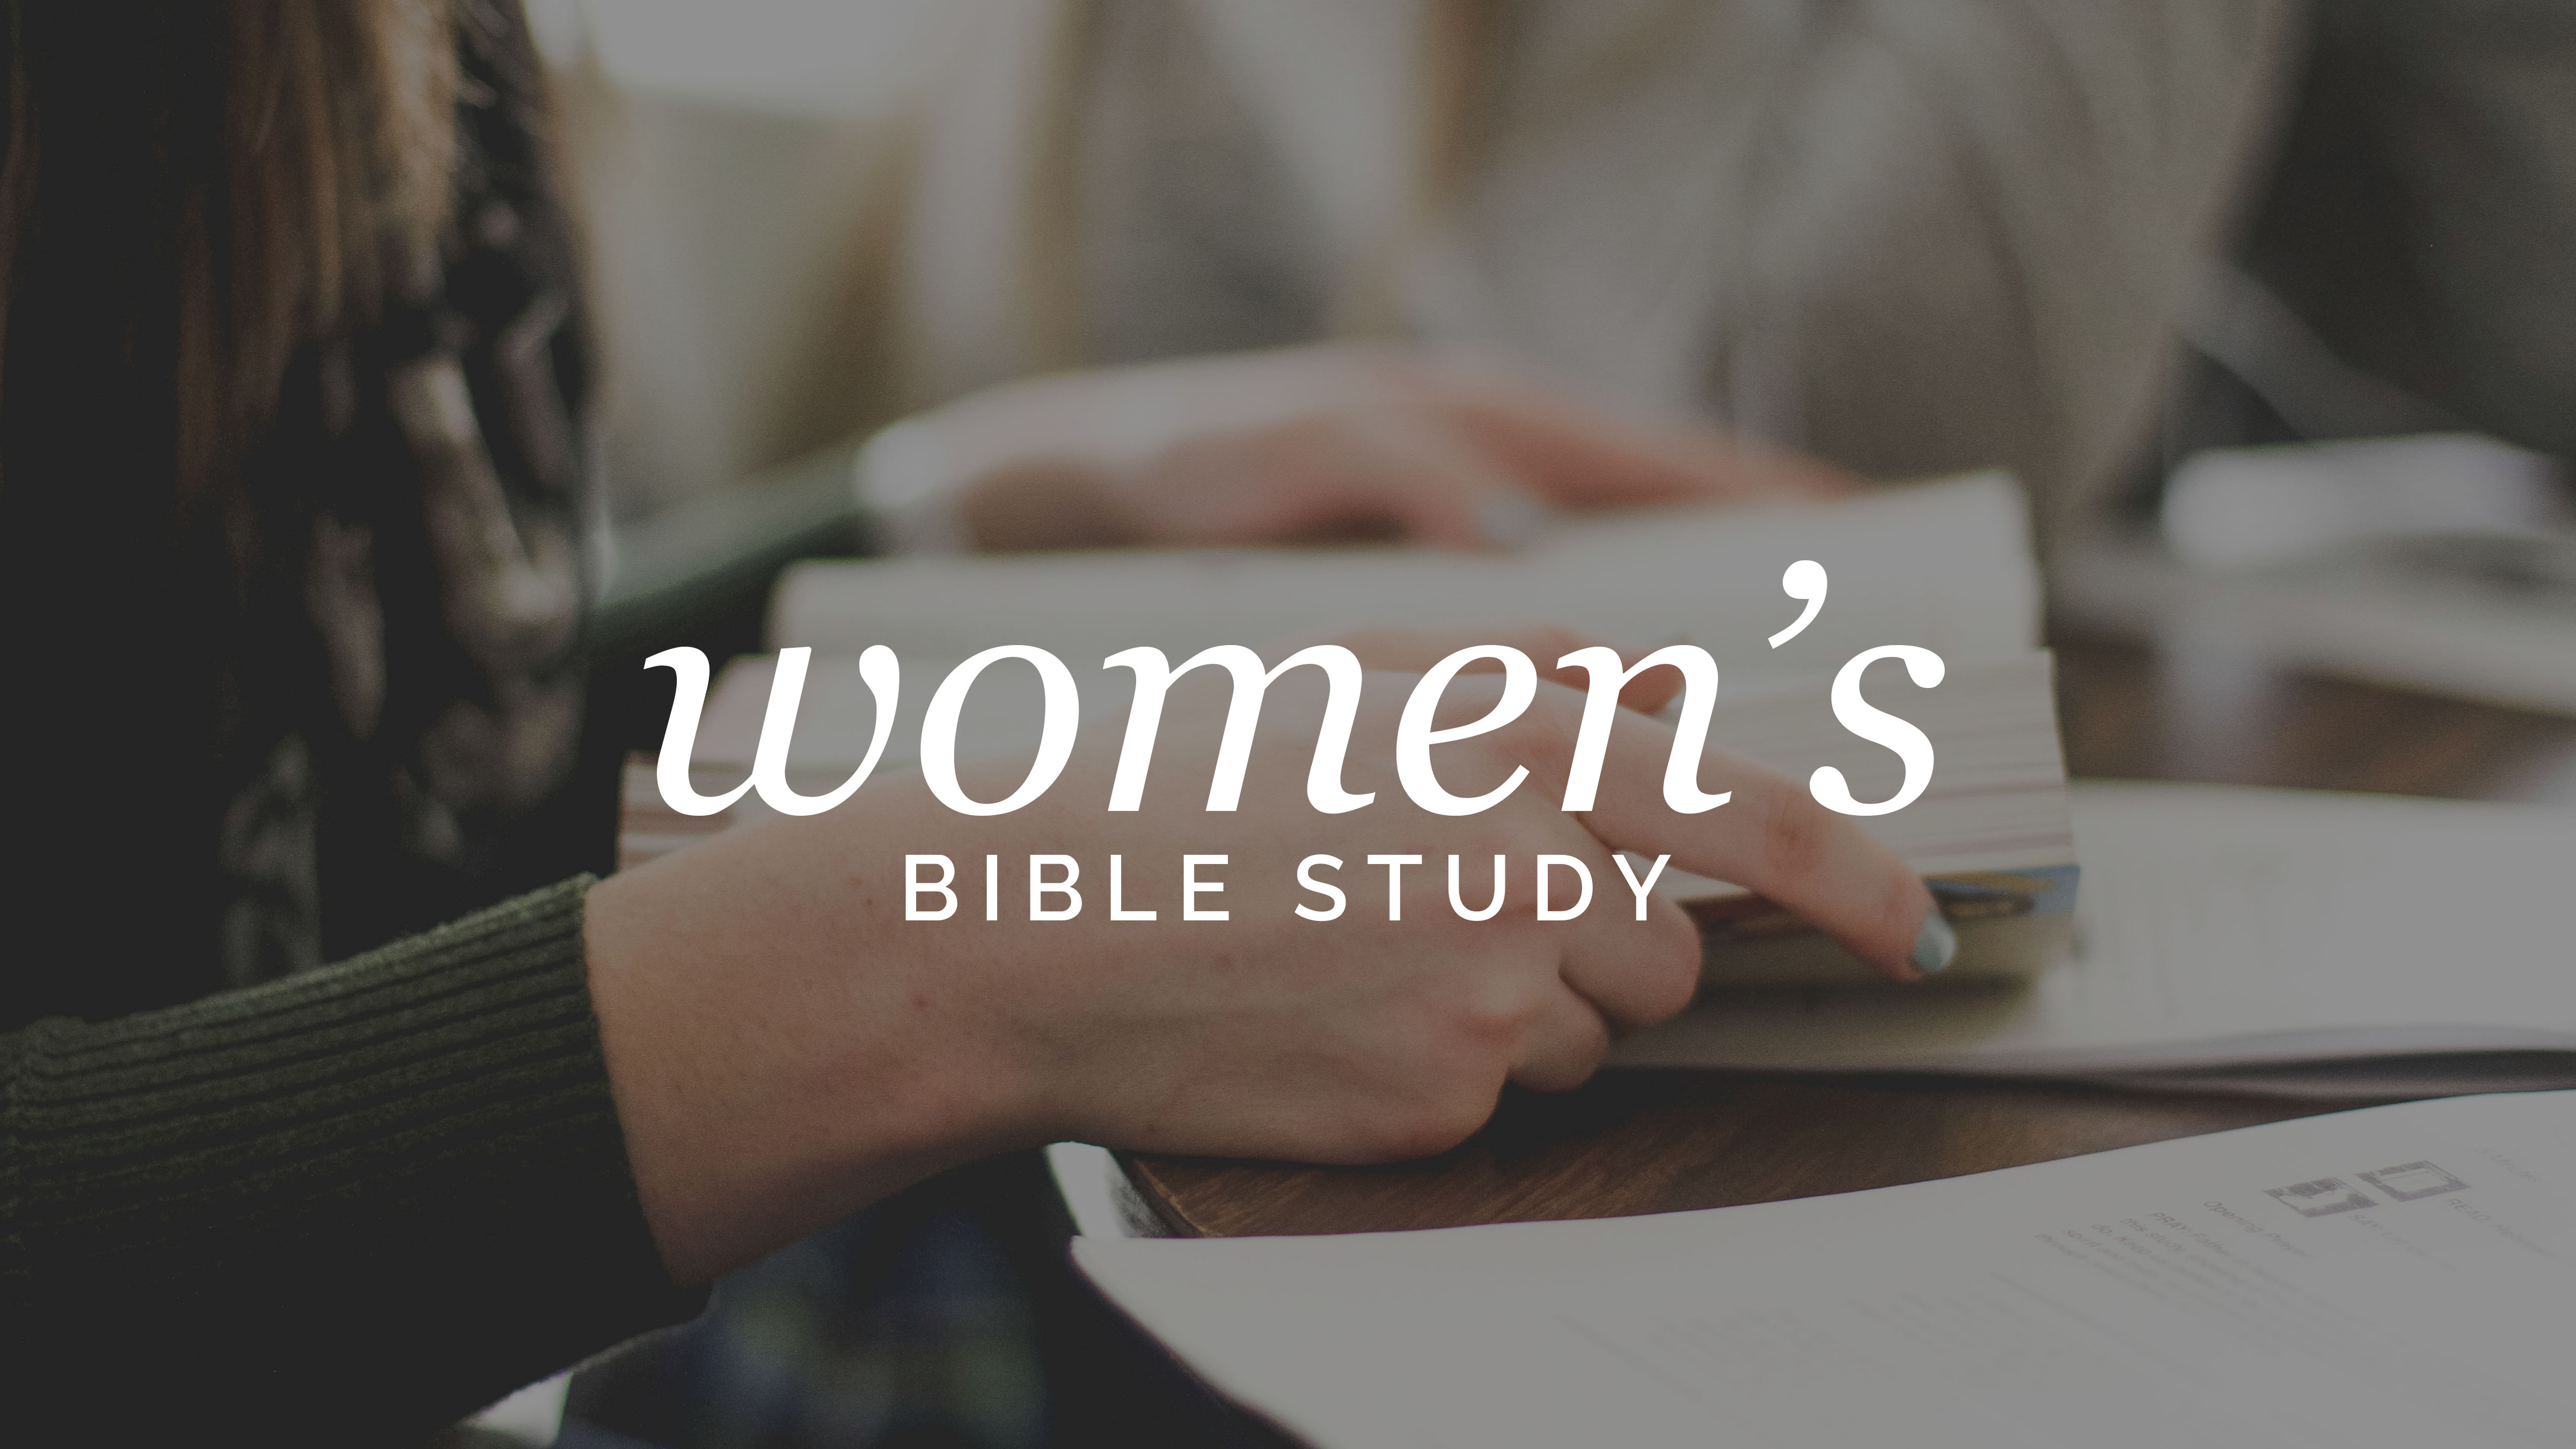 womensbiblestudy.slide.1